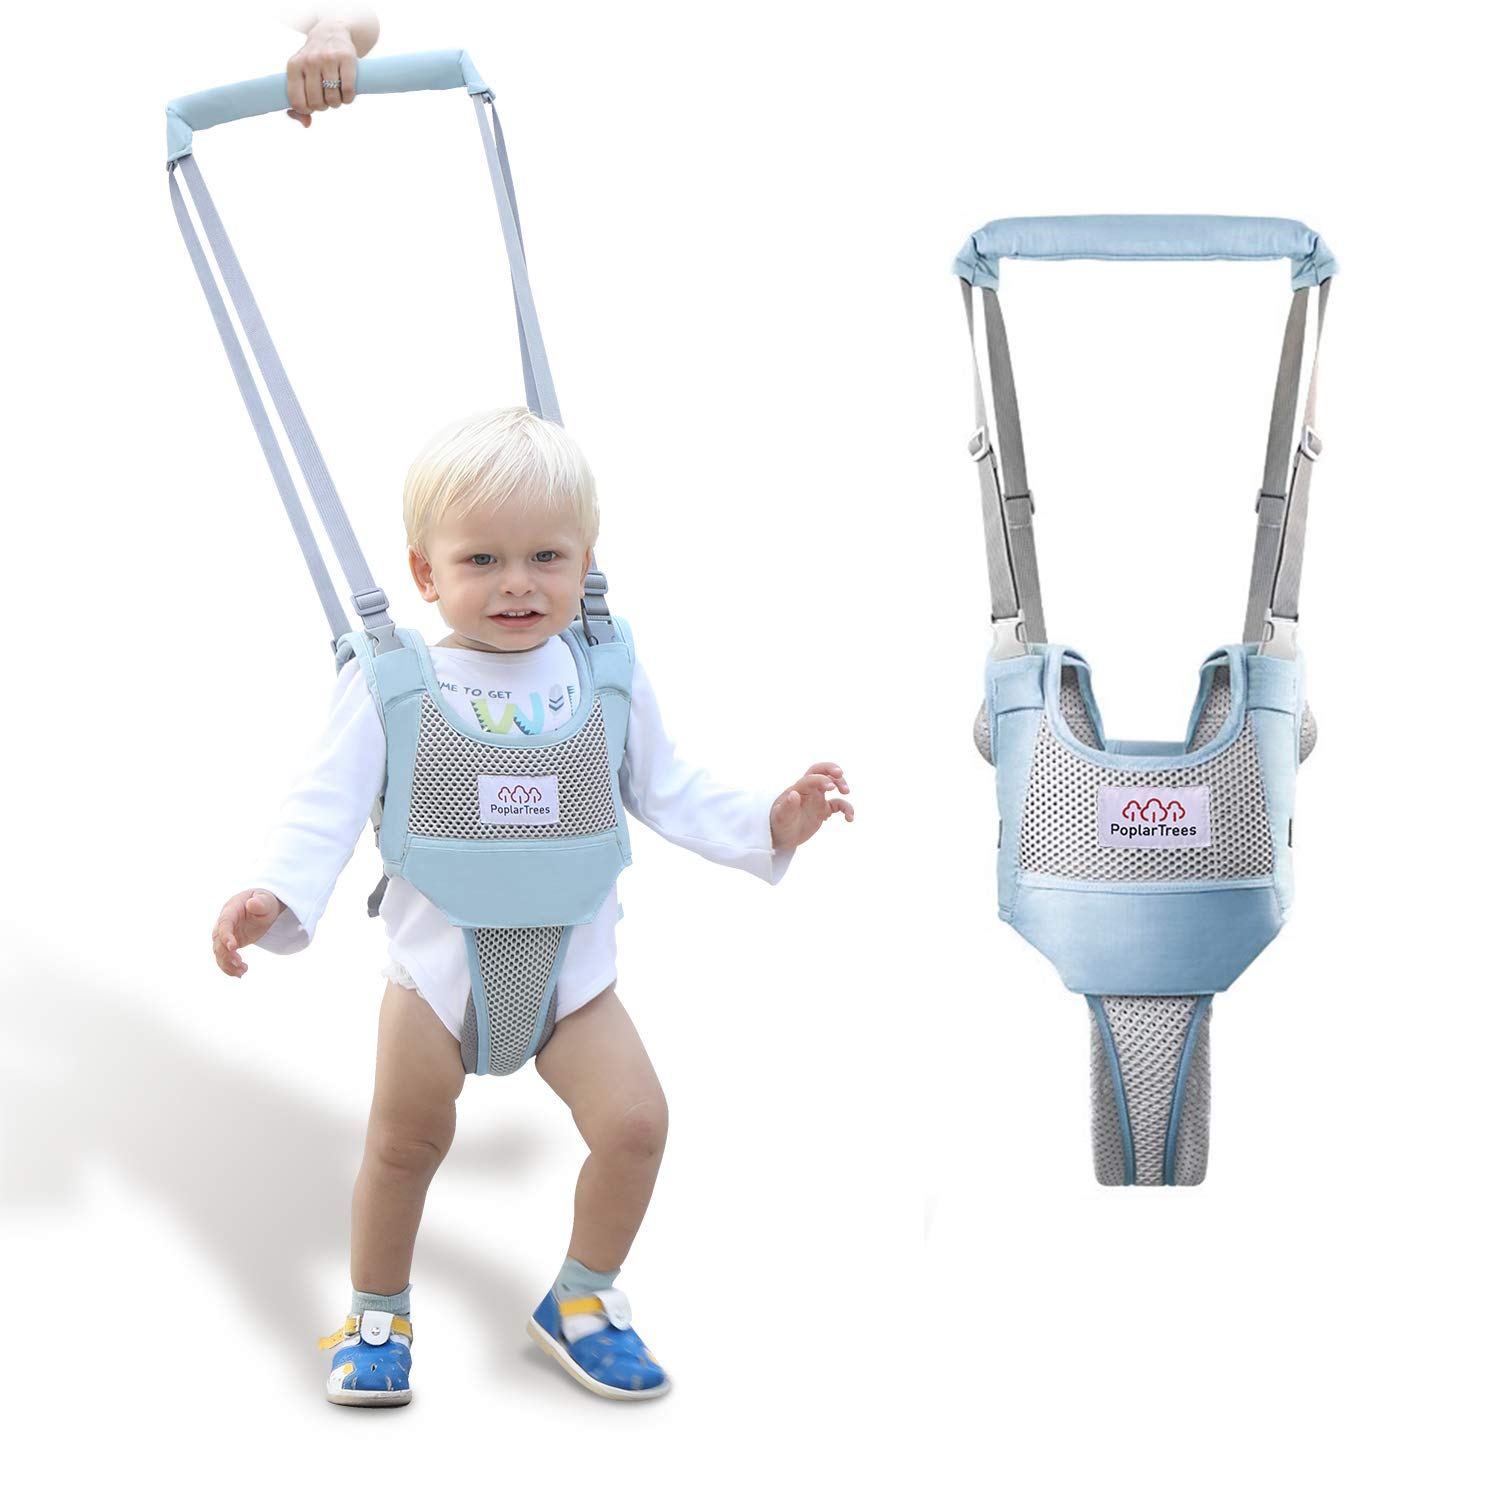 Baby Walker, PoplarTrees Baby Walking Harness, Adjustable Toddler Walking Helper with Detachable Crotch for 7-24 Months Kids, Breathable Toddler Walking Learning Assistant Child Activity Walker